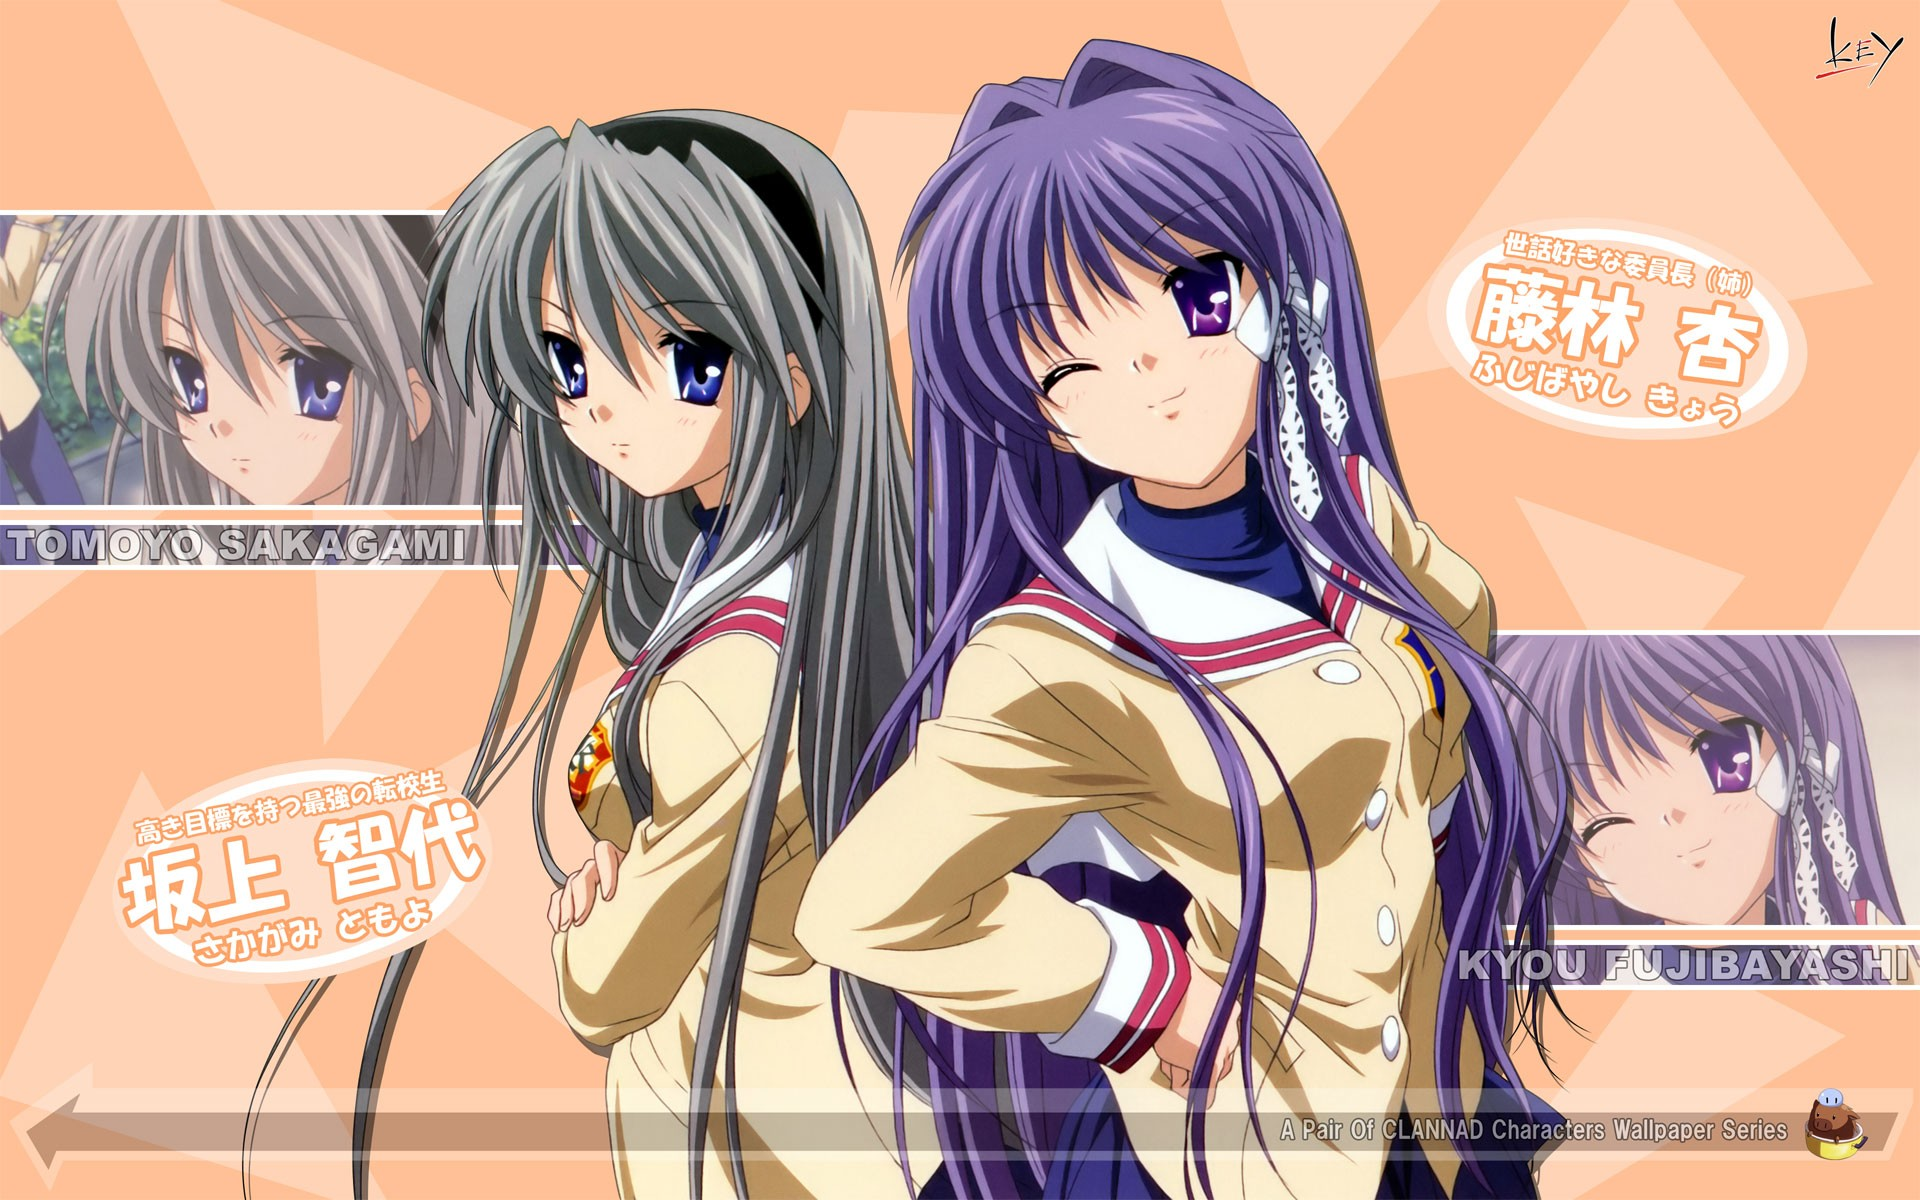 Ive Always Thought Clannad Had An Amazing Art Style As For Openings